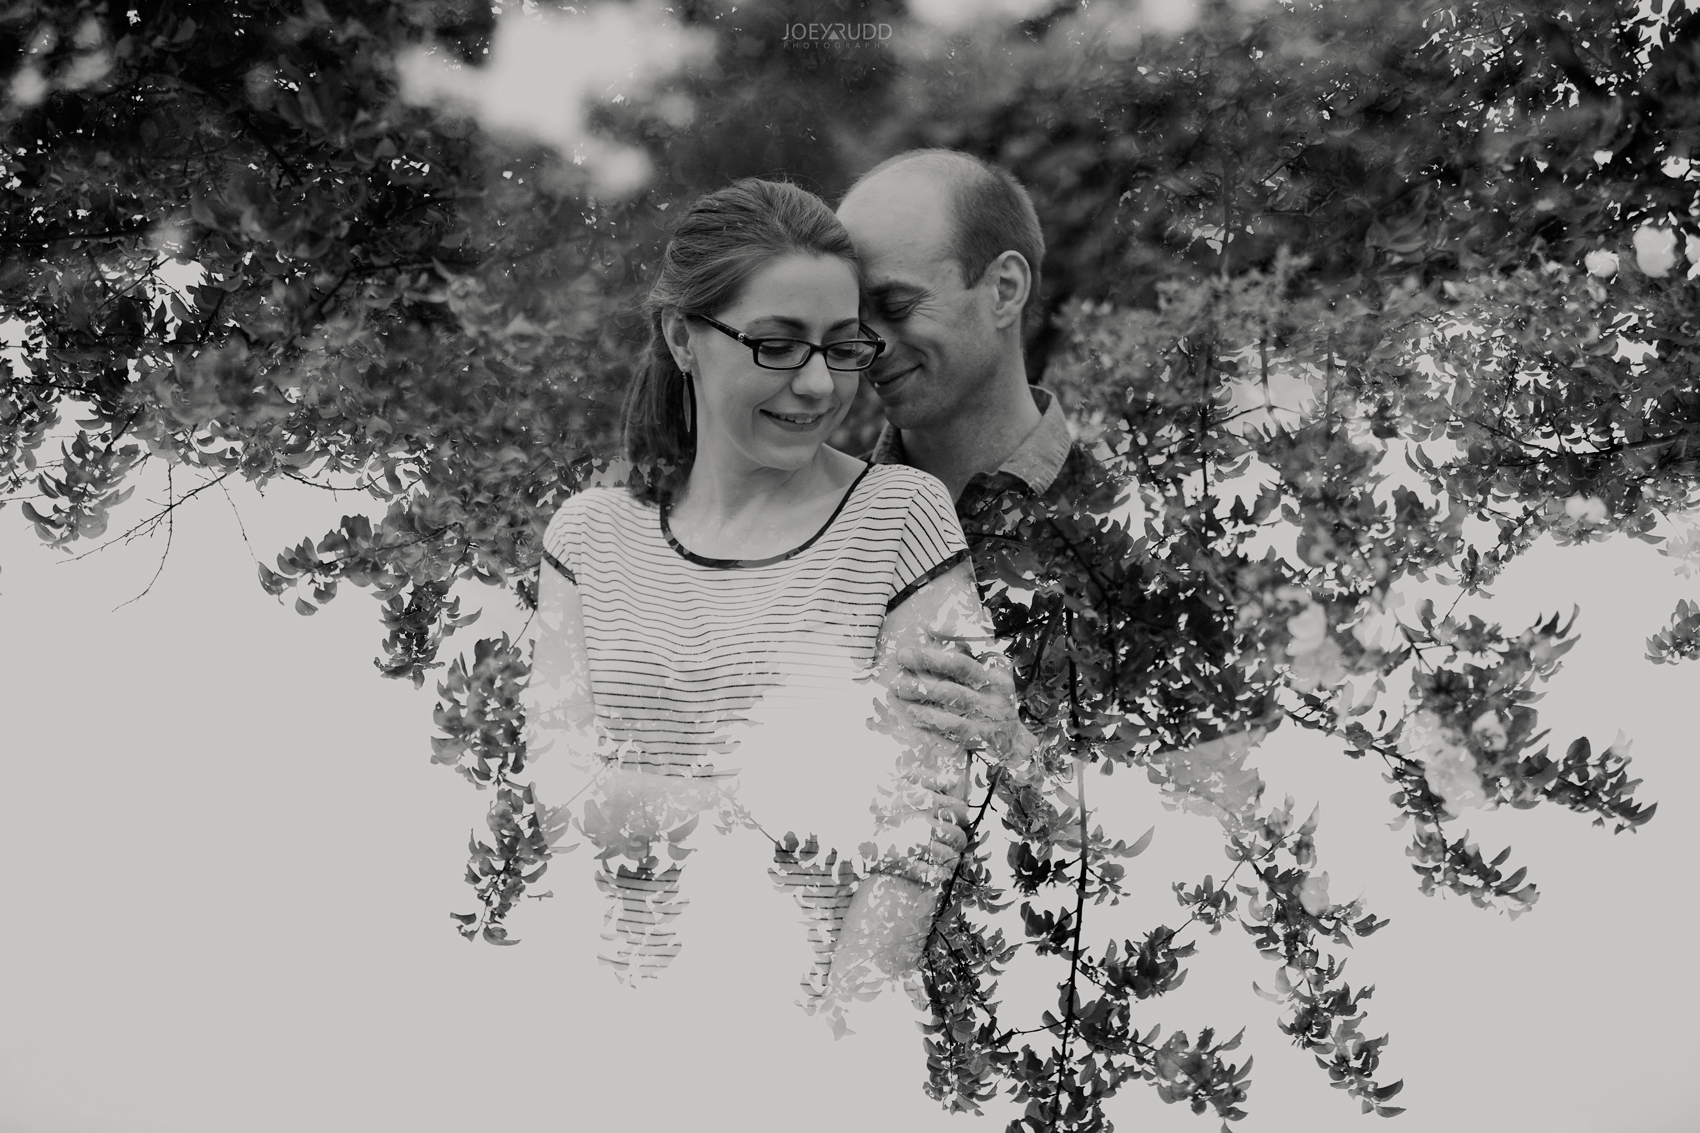 Rideau Hall Engagement, Joey Rudd Photography, Ottawa, Ottawa Engagement, Ottawa Engagement Photos, Fountain, Engaged Ottawa, Wedding Photographer, Wedding Photography, Rideau Park, Photo Locations Ottawa, Places for Photos in Ottawa, double exposure